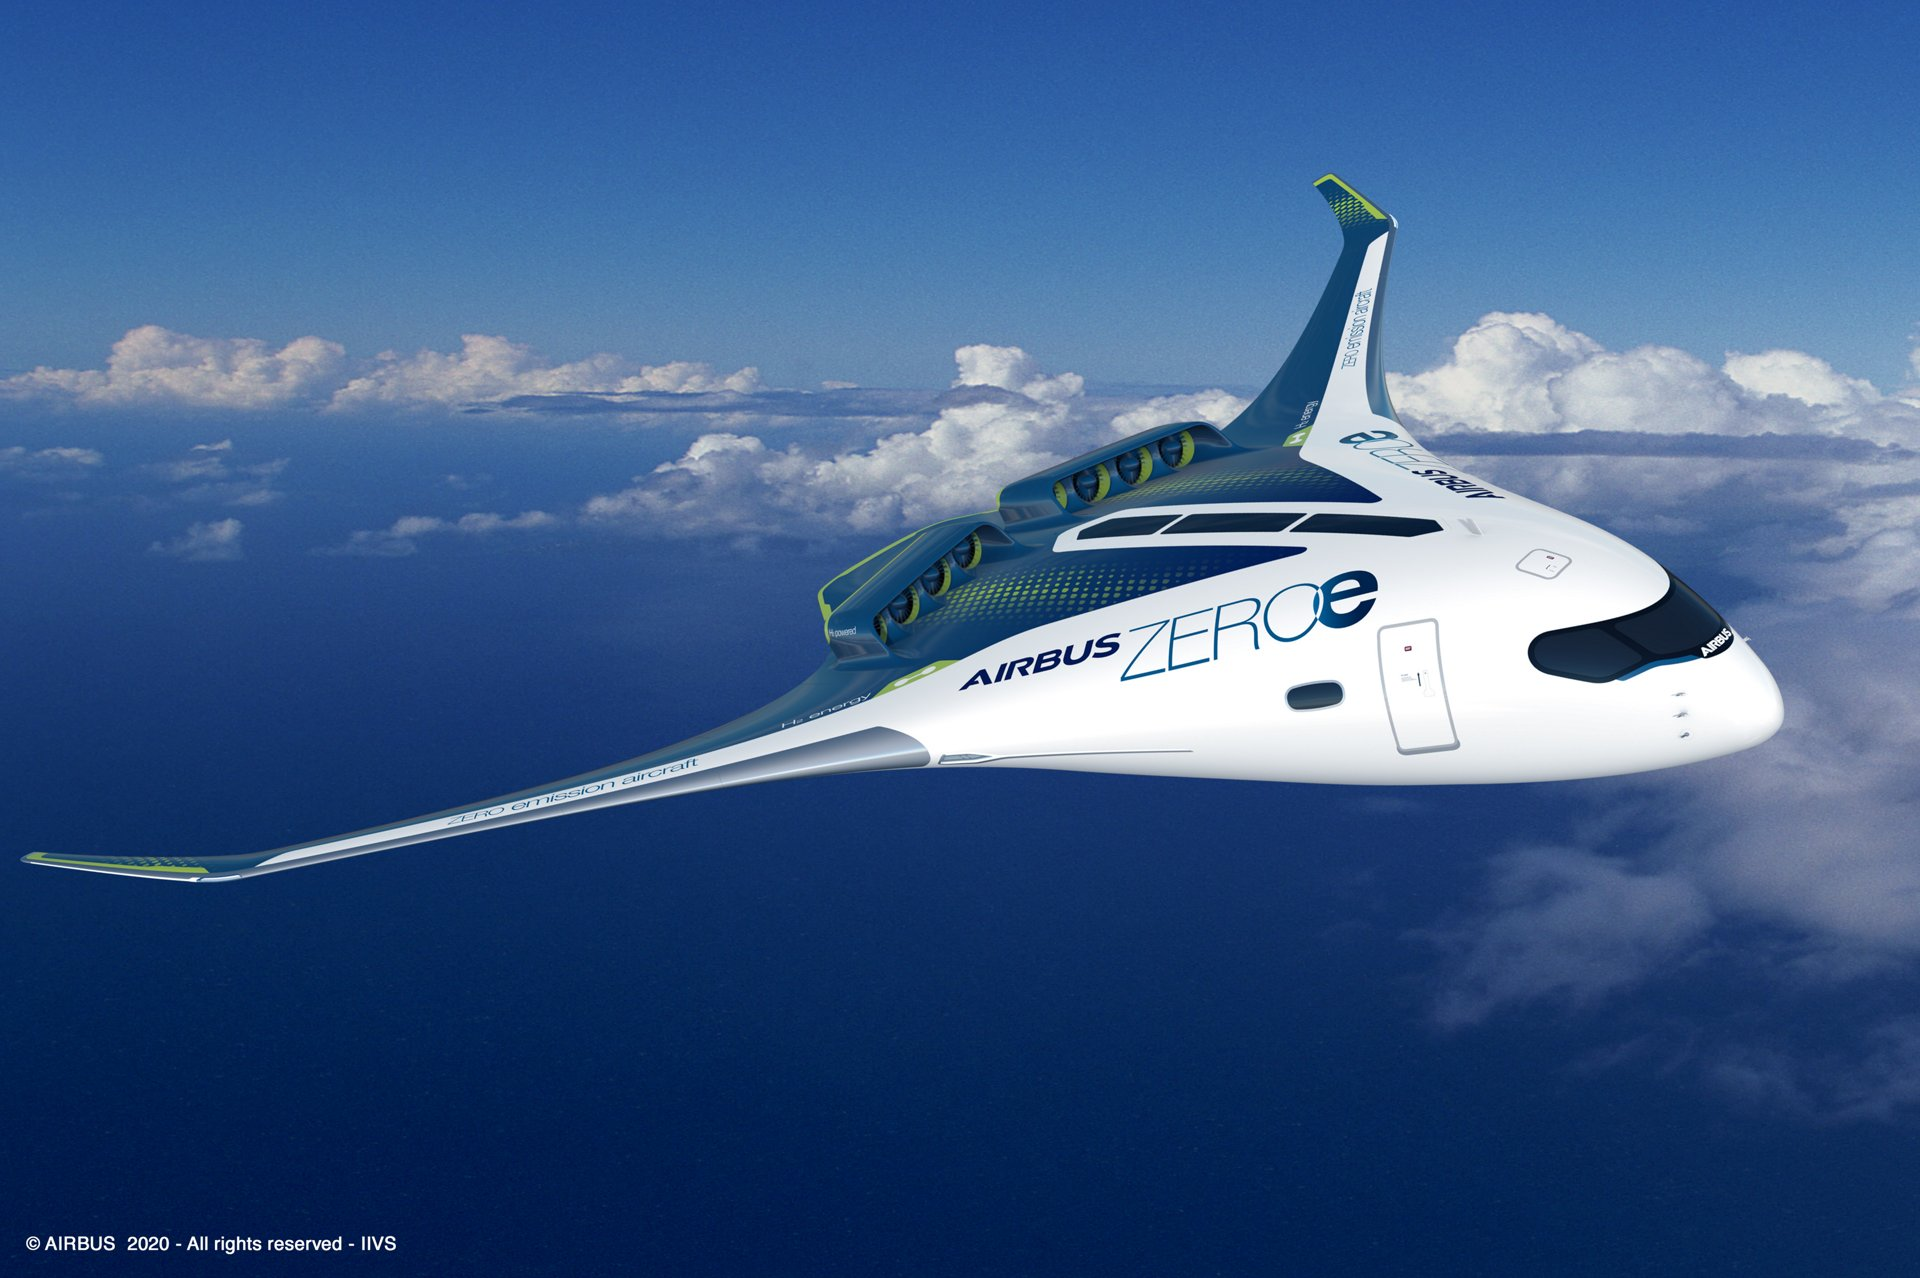 Airbus is working on a number of hydrogen-fueled clean aircraft, including this blended wing concept